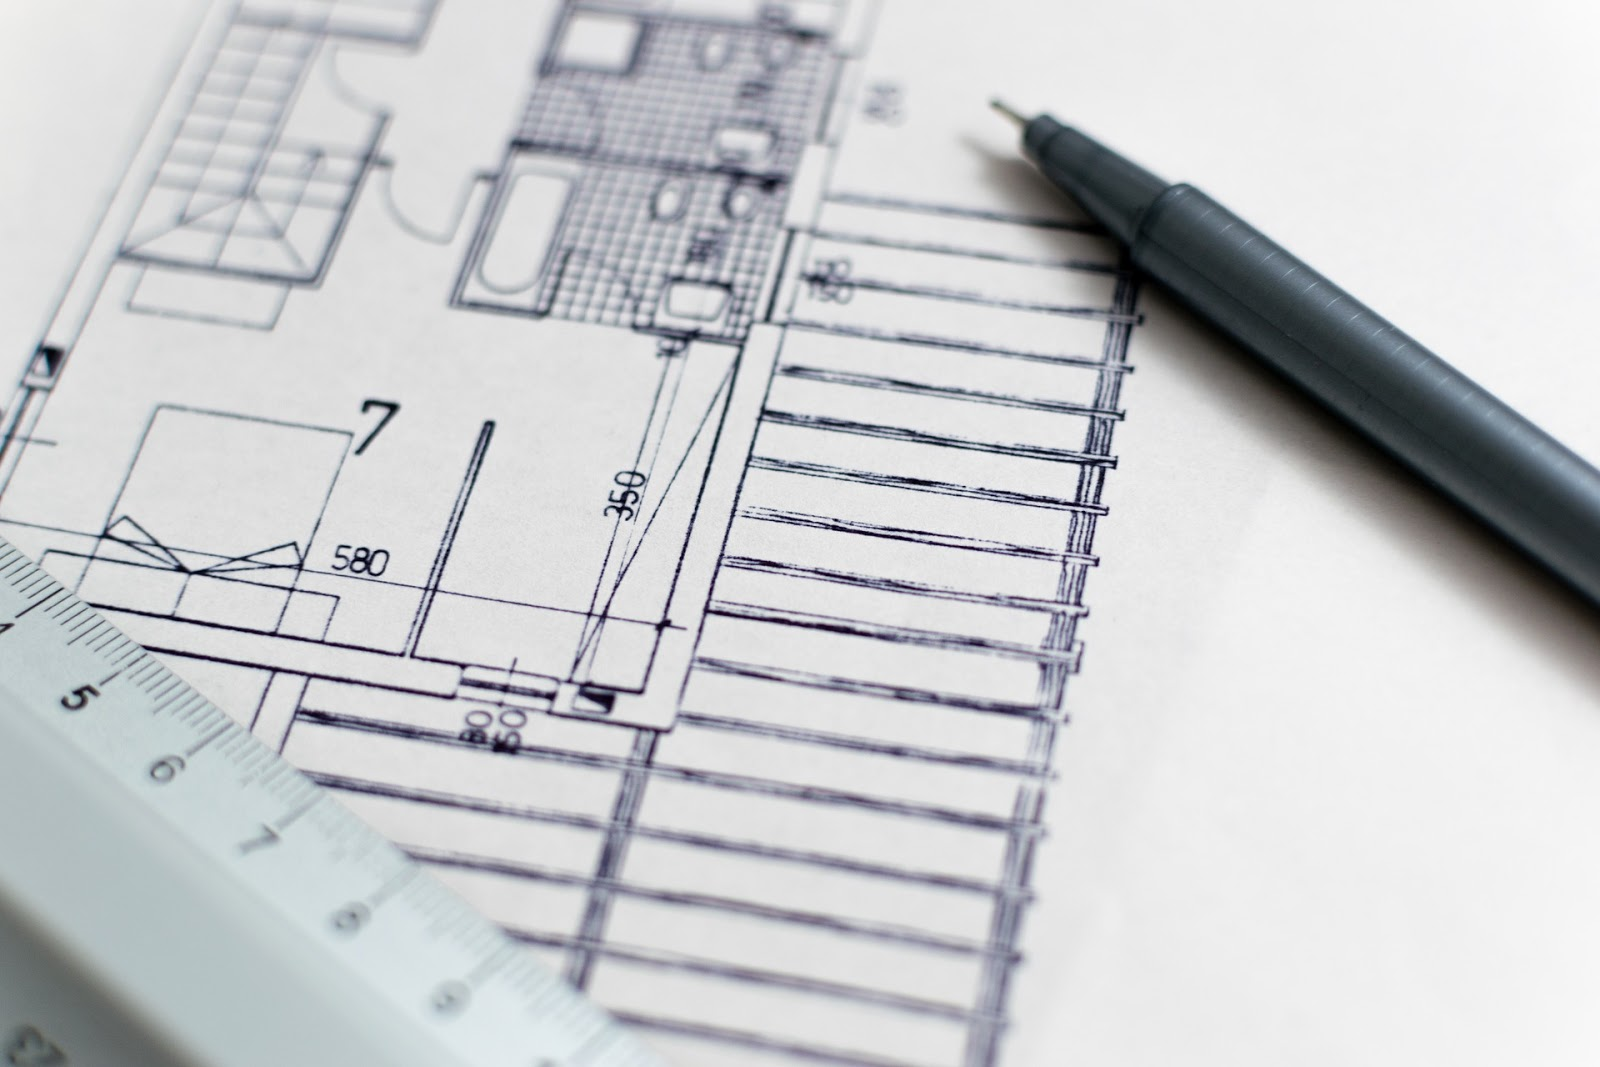 Home Remodeling: The Importance Of Communication writing on paper